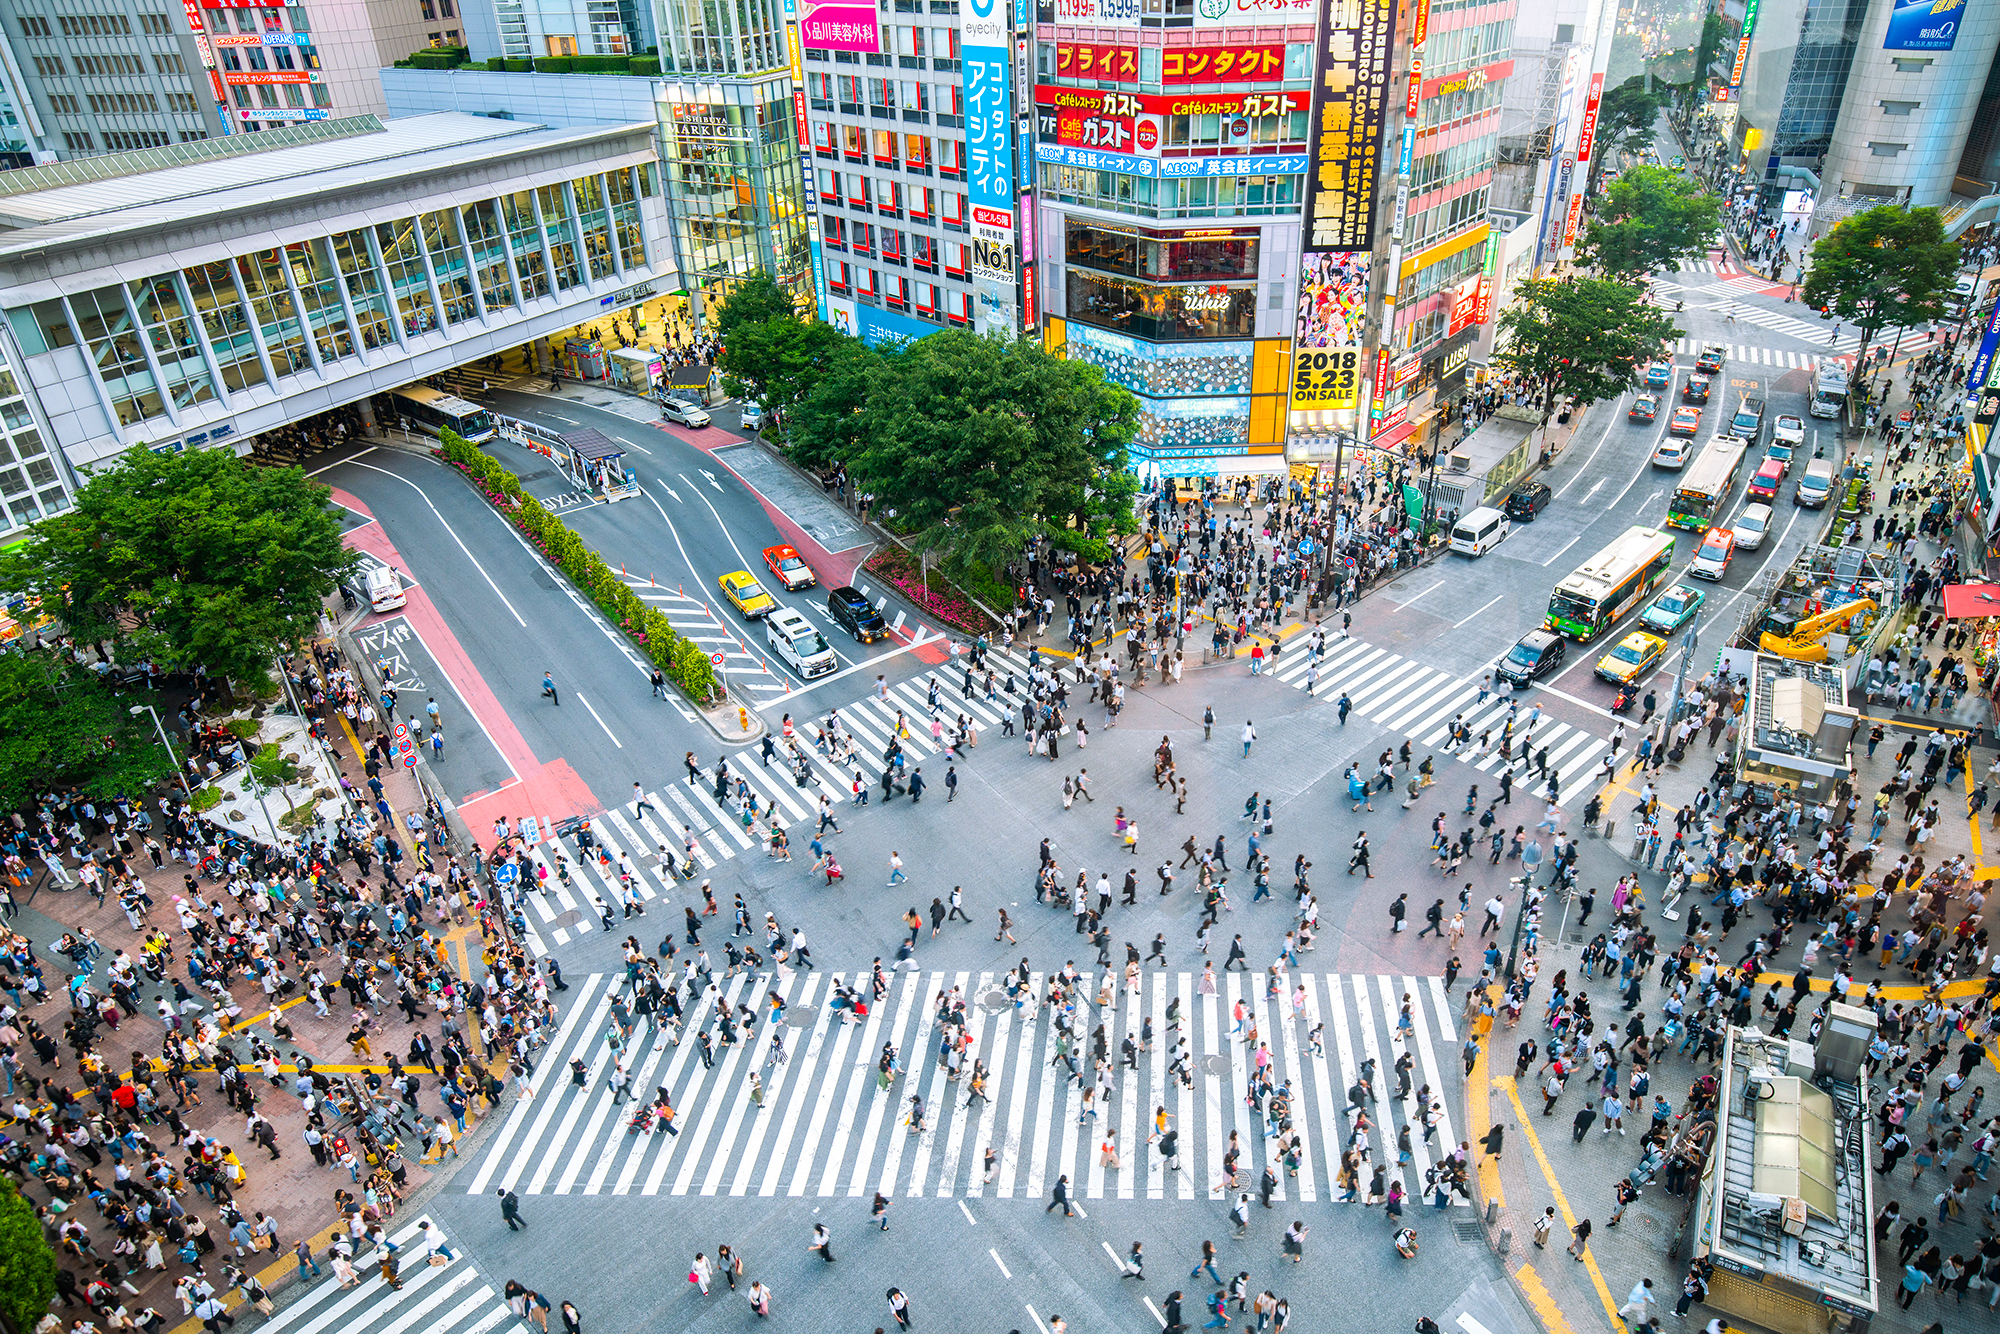 Aerial view of Tokyo's famous Shibuya Crossing.